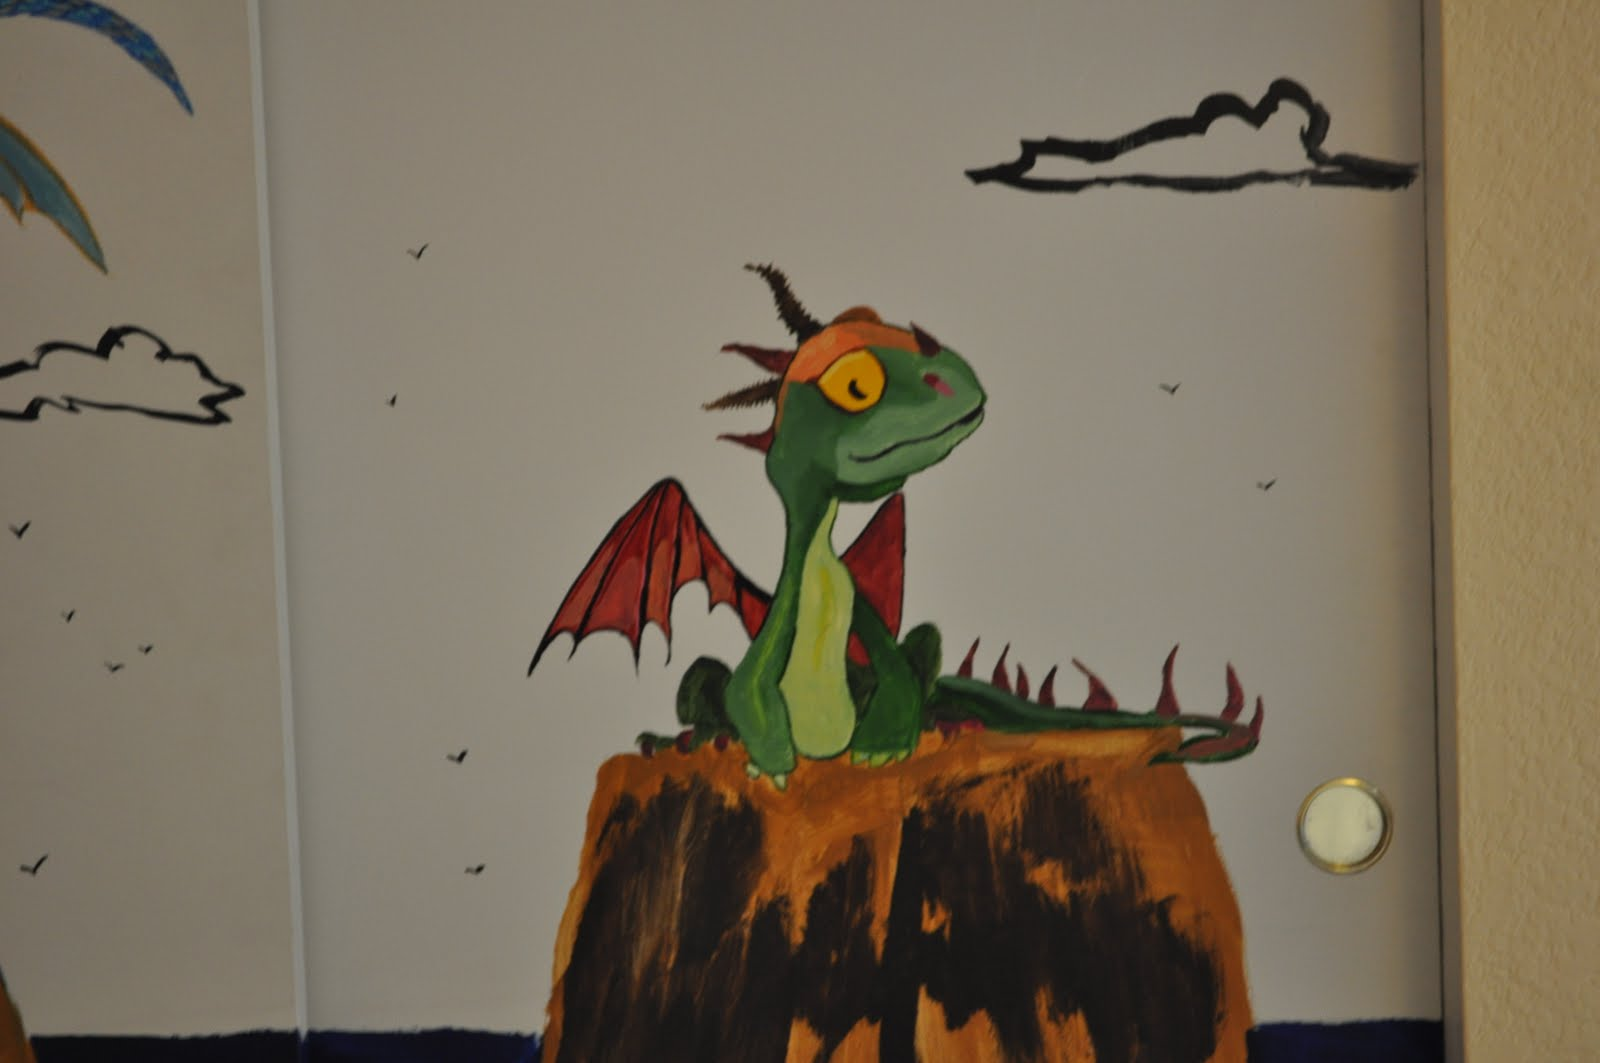 How to train your dragon mural cappatoons for Dragon mural for wall